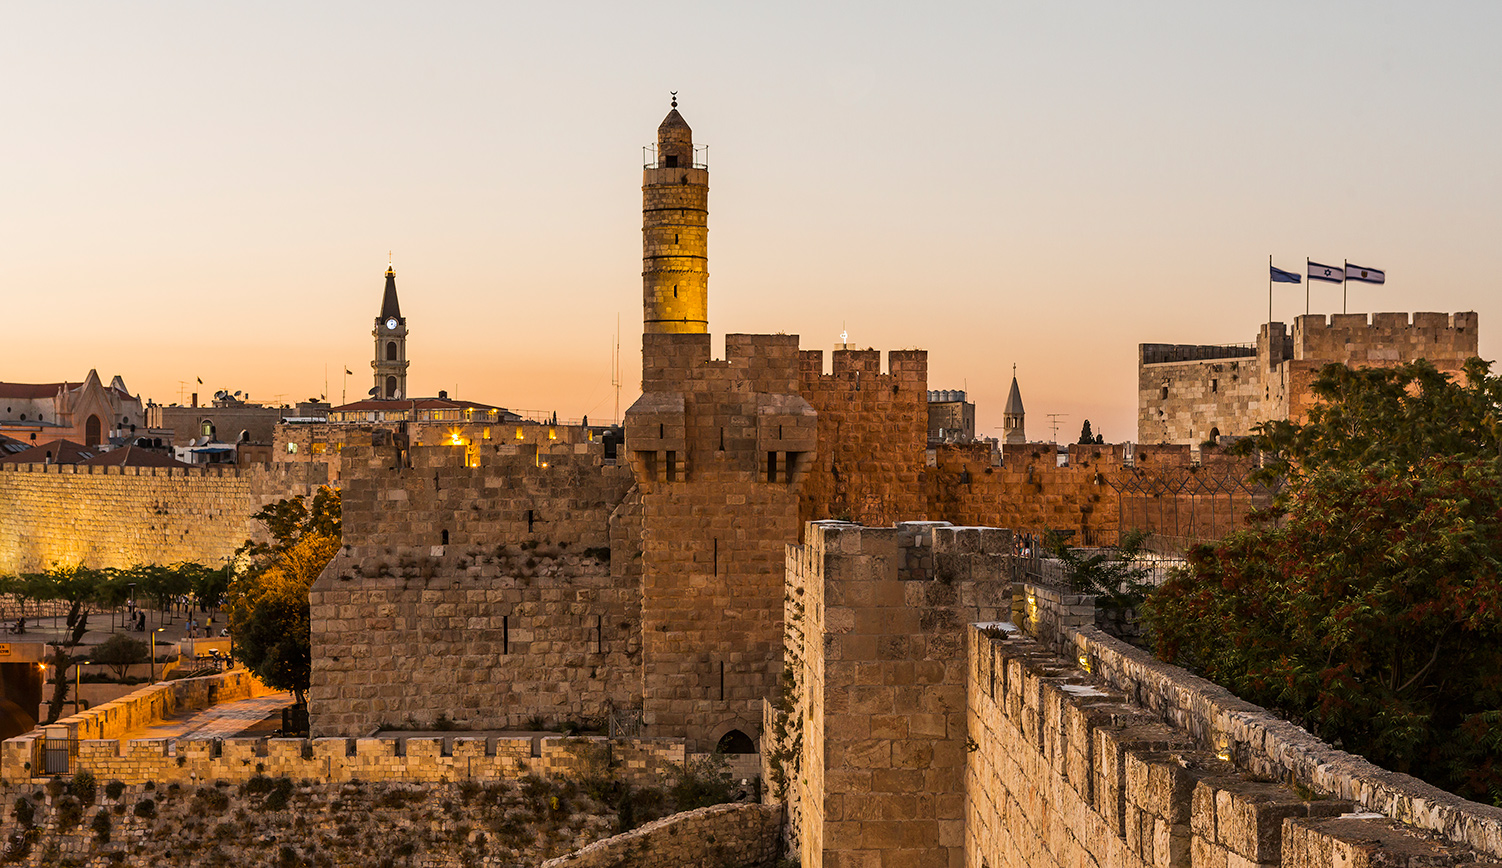 The Tower of David in Jerusalem. Atlantide Phototravel/Corbis/Getty Images.